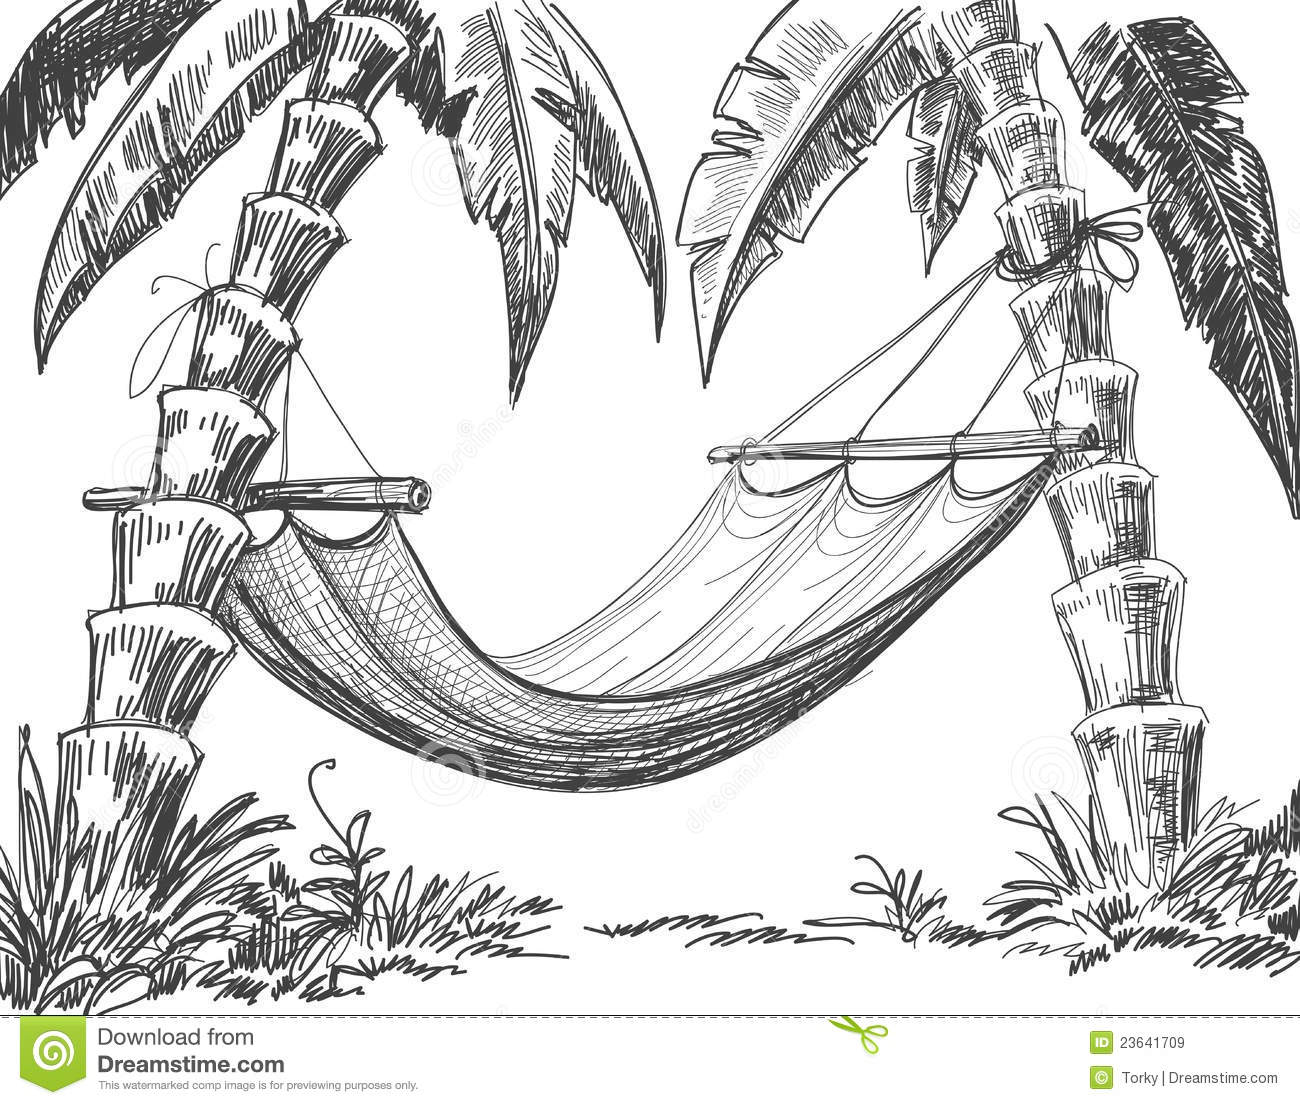 Royalty Free Stock Images Hammock Pencil Drawing Image23641709 on How To Draw 3d House Plans